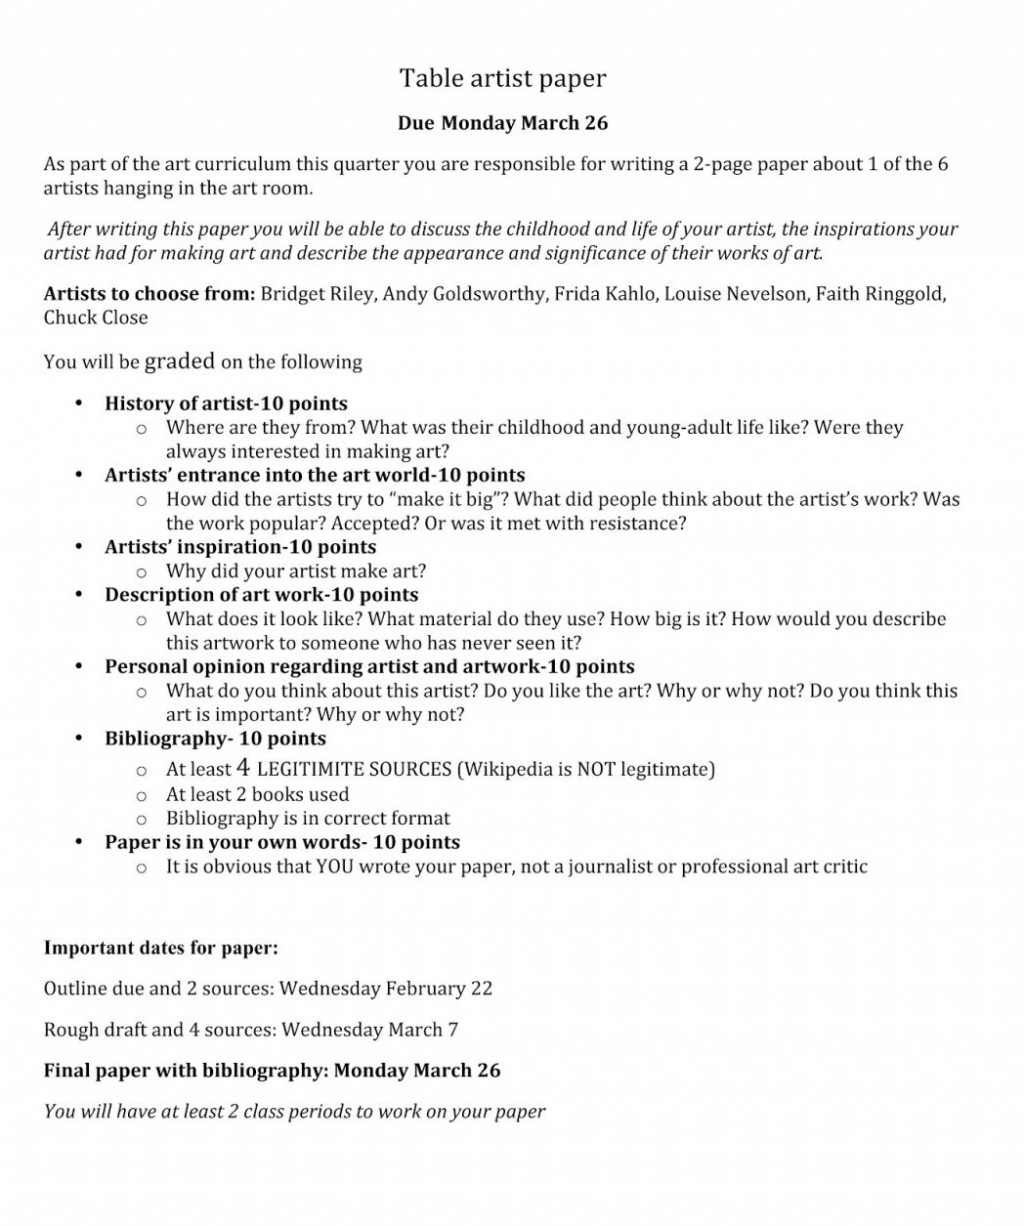 002 Art History Essays Uncategorized Impressionisms Writing Research Paper Papers Leaving20 Staggering Example Outline Template Sample Large